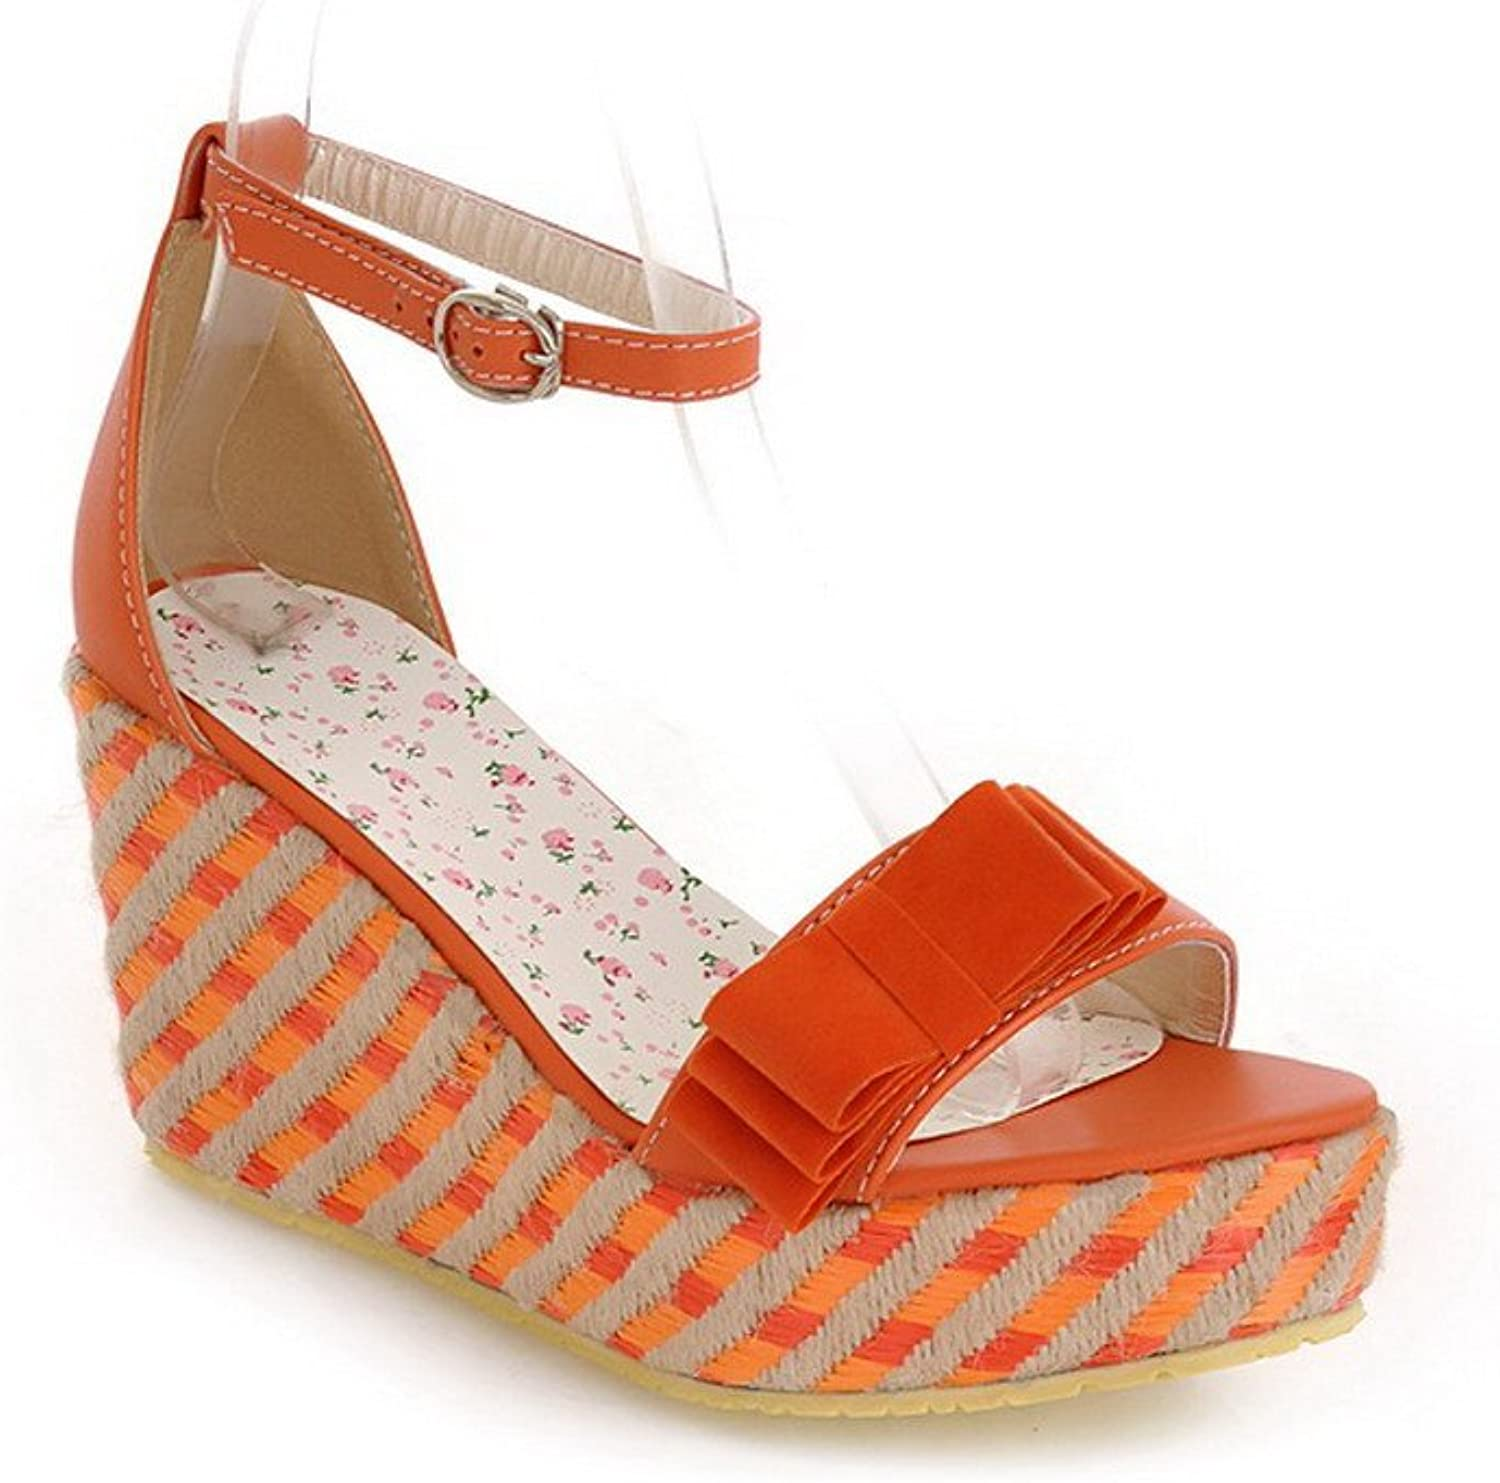 AmoonyFashion Womens Open Toe High Heel Wedge Platform Soft Material PU Solid Sandals with Bowknot, orange, 5.5 B(M) US